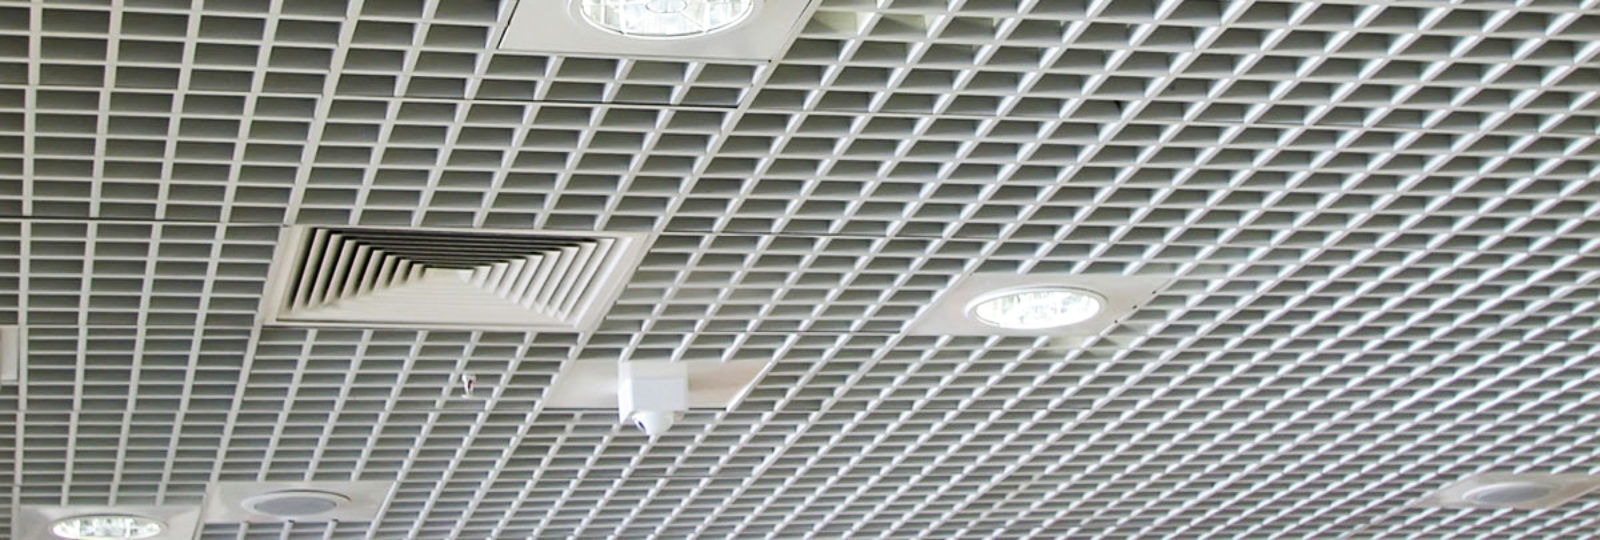 An image showing an office ventilation system on the ceiling.